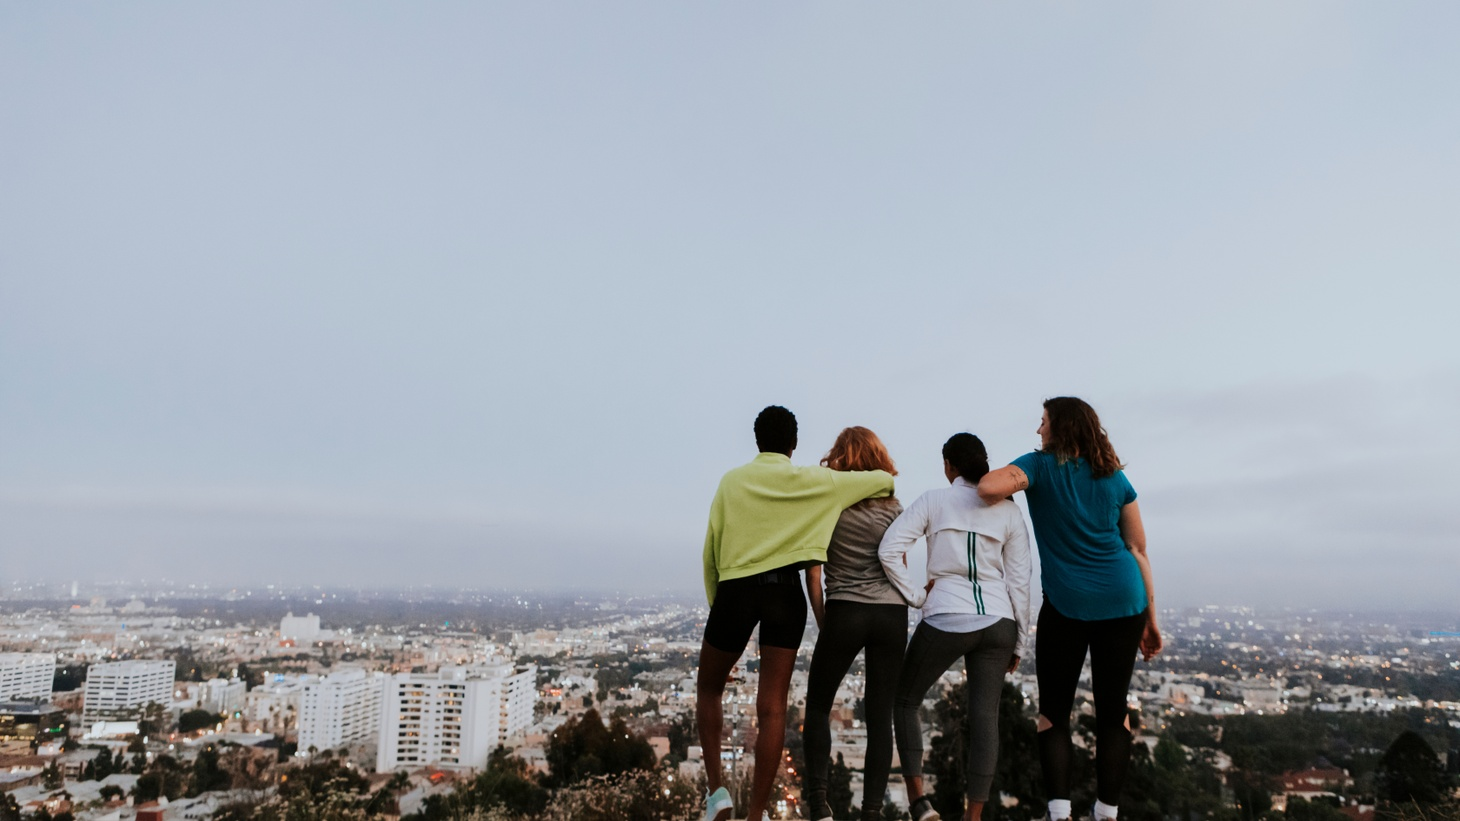 Friends on a hike overlooking Los Angeles.